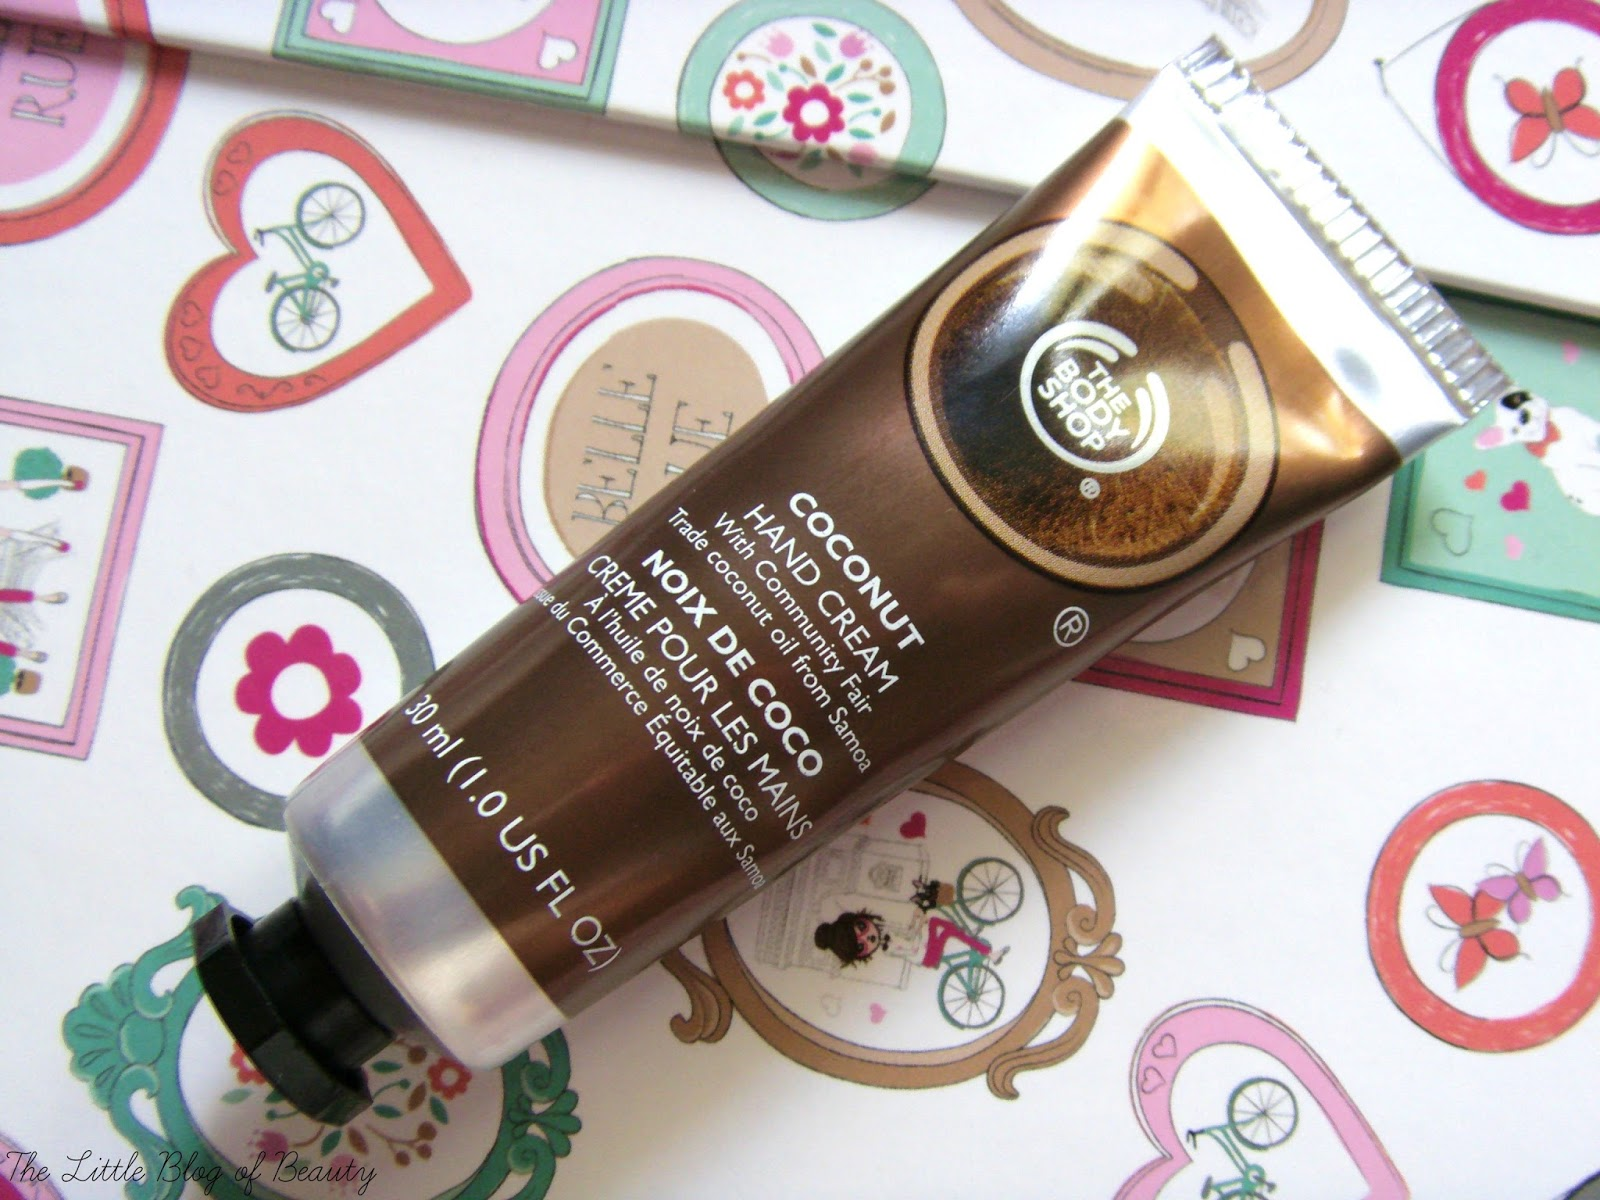 The Body Shop mini Coconut hand cream